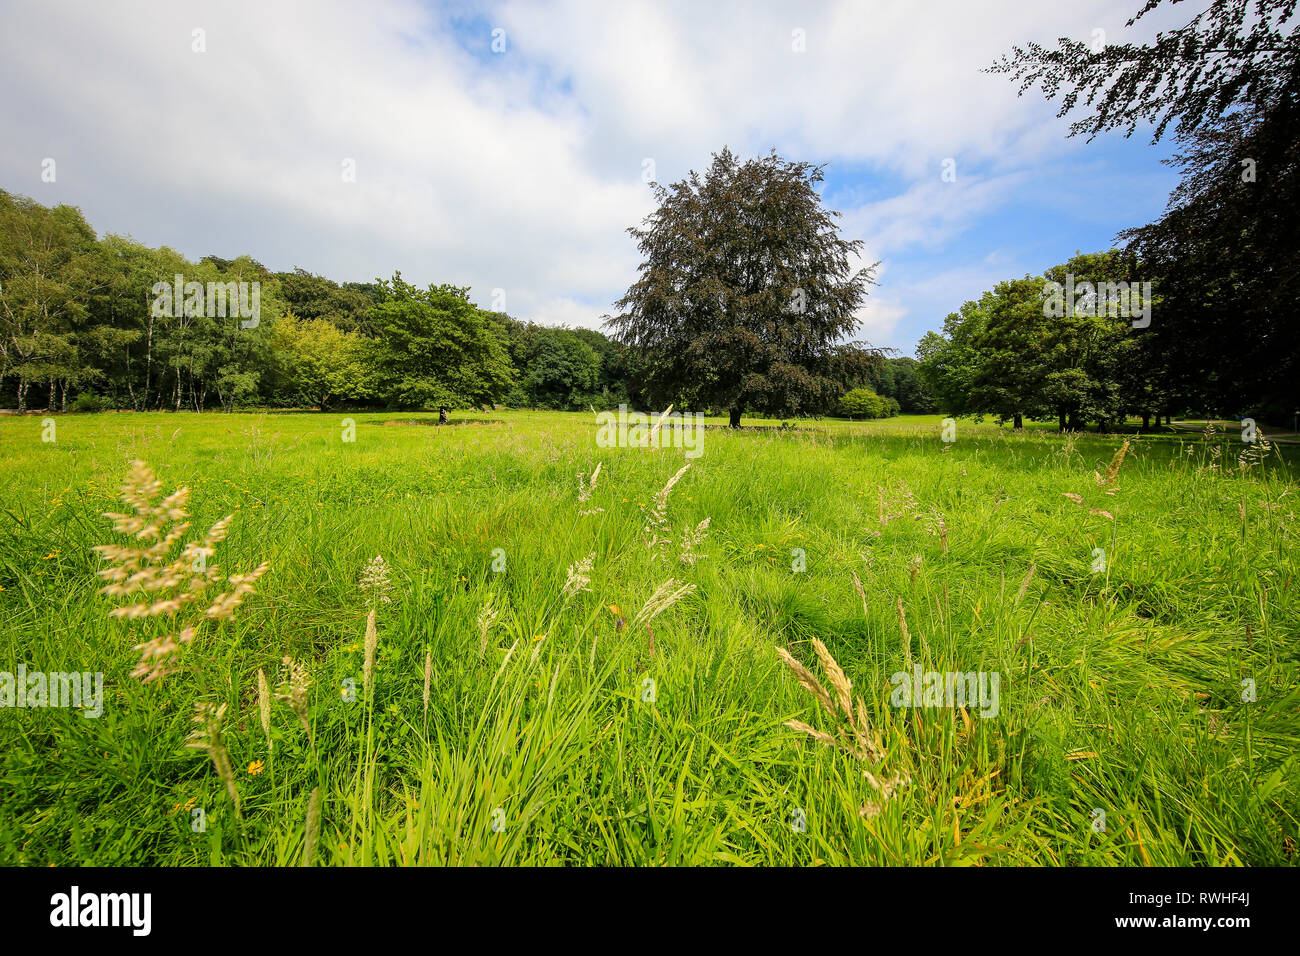 Essen, North Rhine-Westphalia, Ruhr area, Germany - The Hallopark between Stoppenberg and Schonnebeck is one of the oldest green spaces in Essen, here Stock Photo